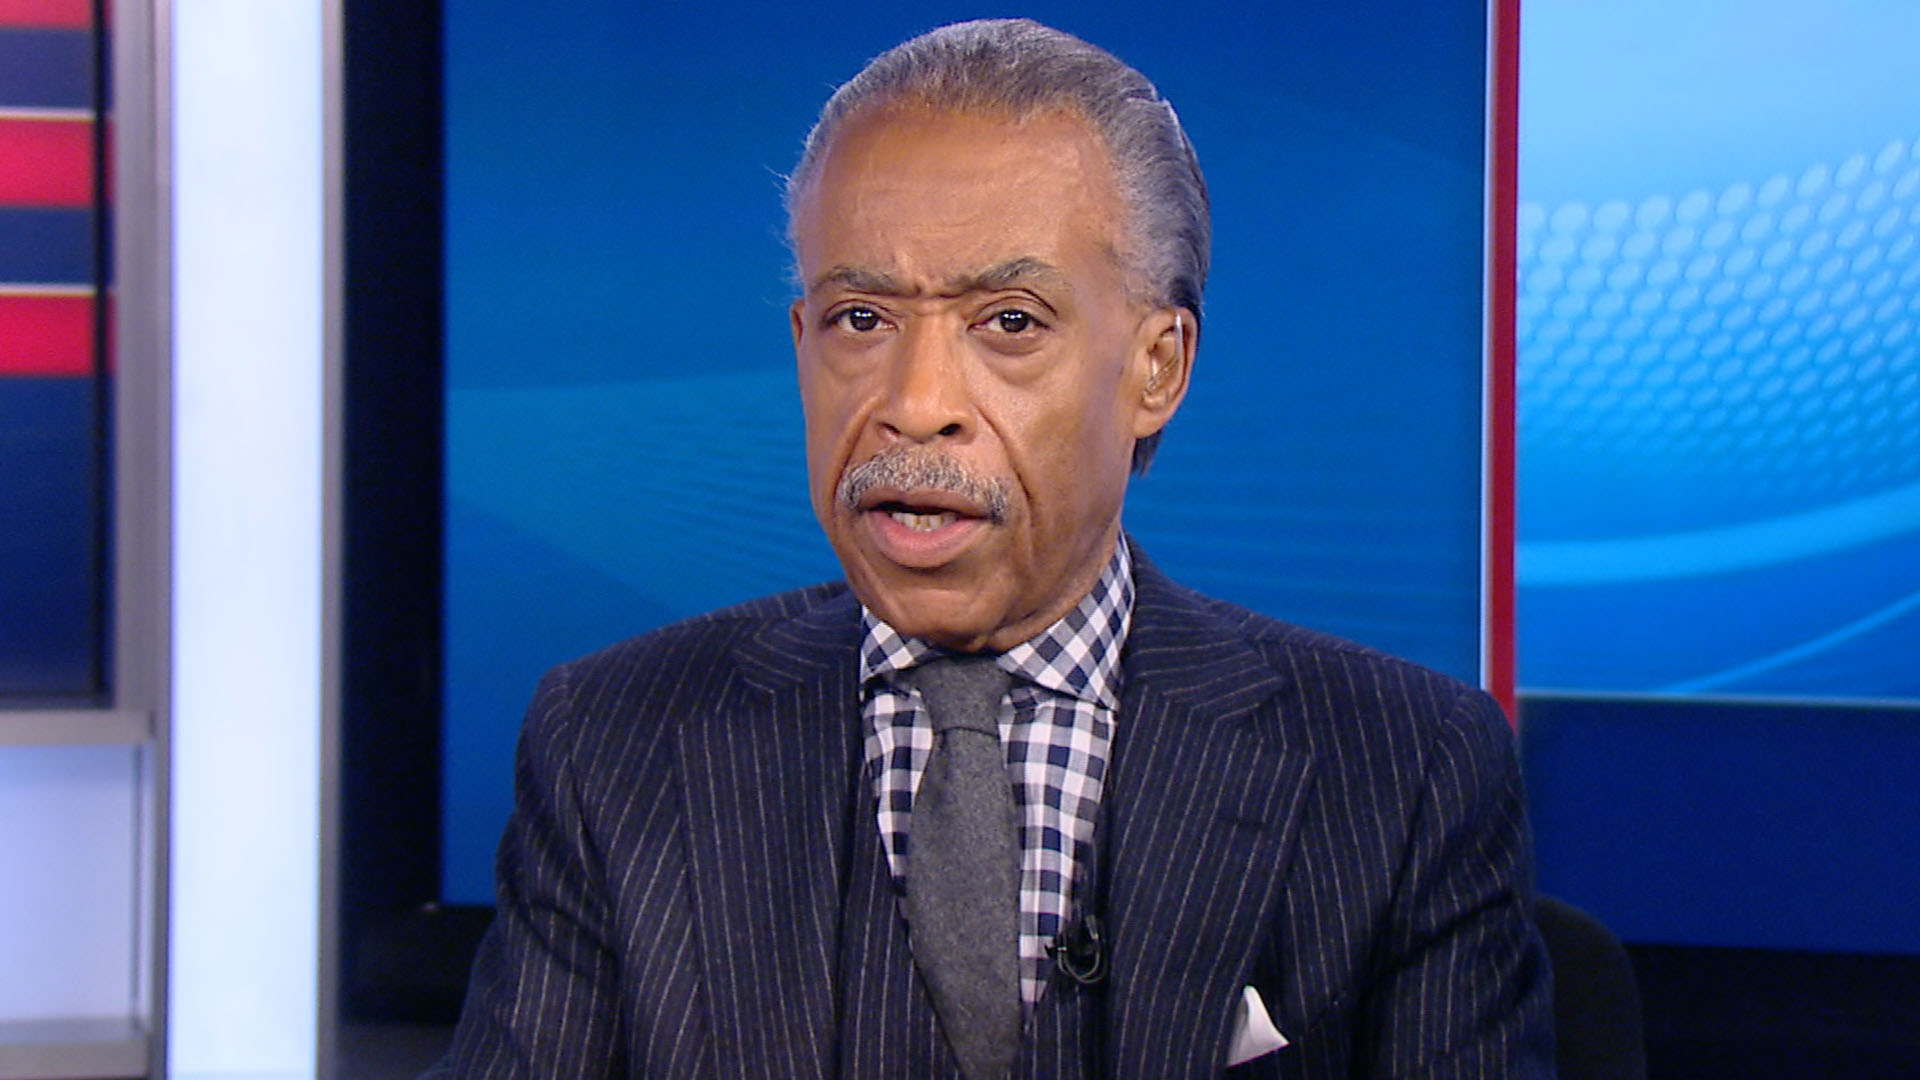 'The blacks'? Sharpton calls out Scalia